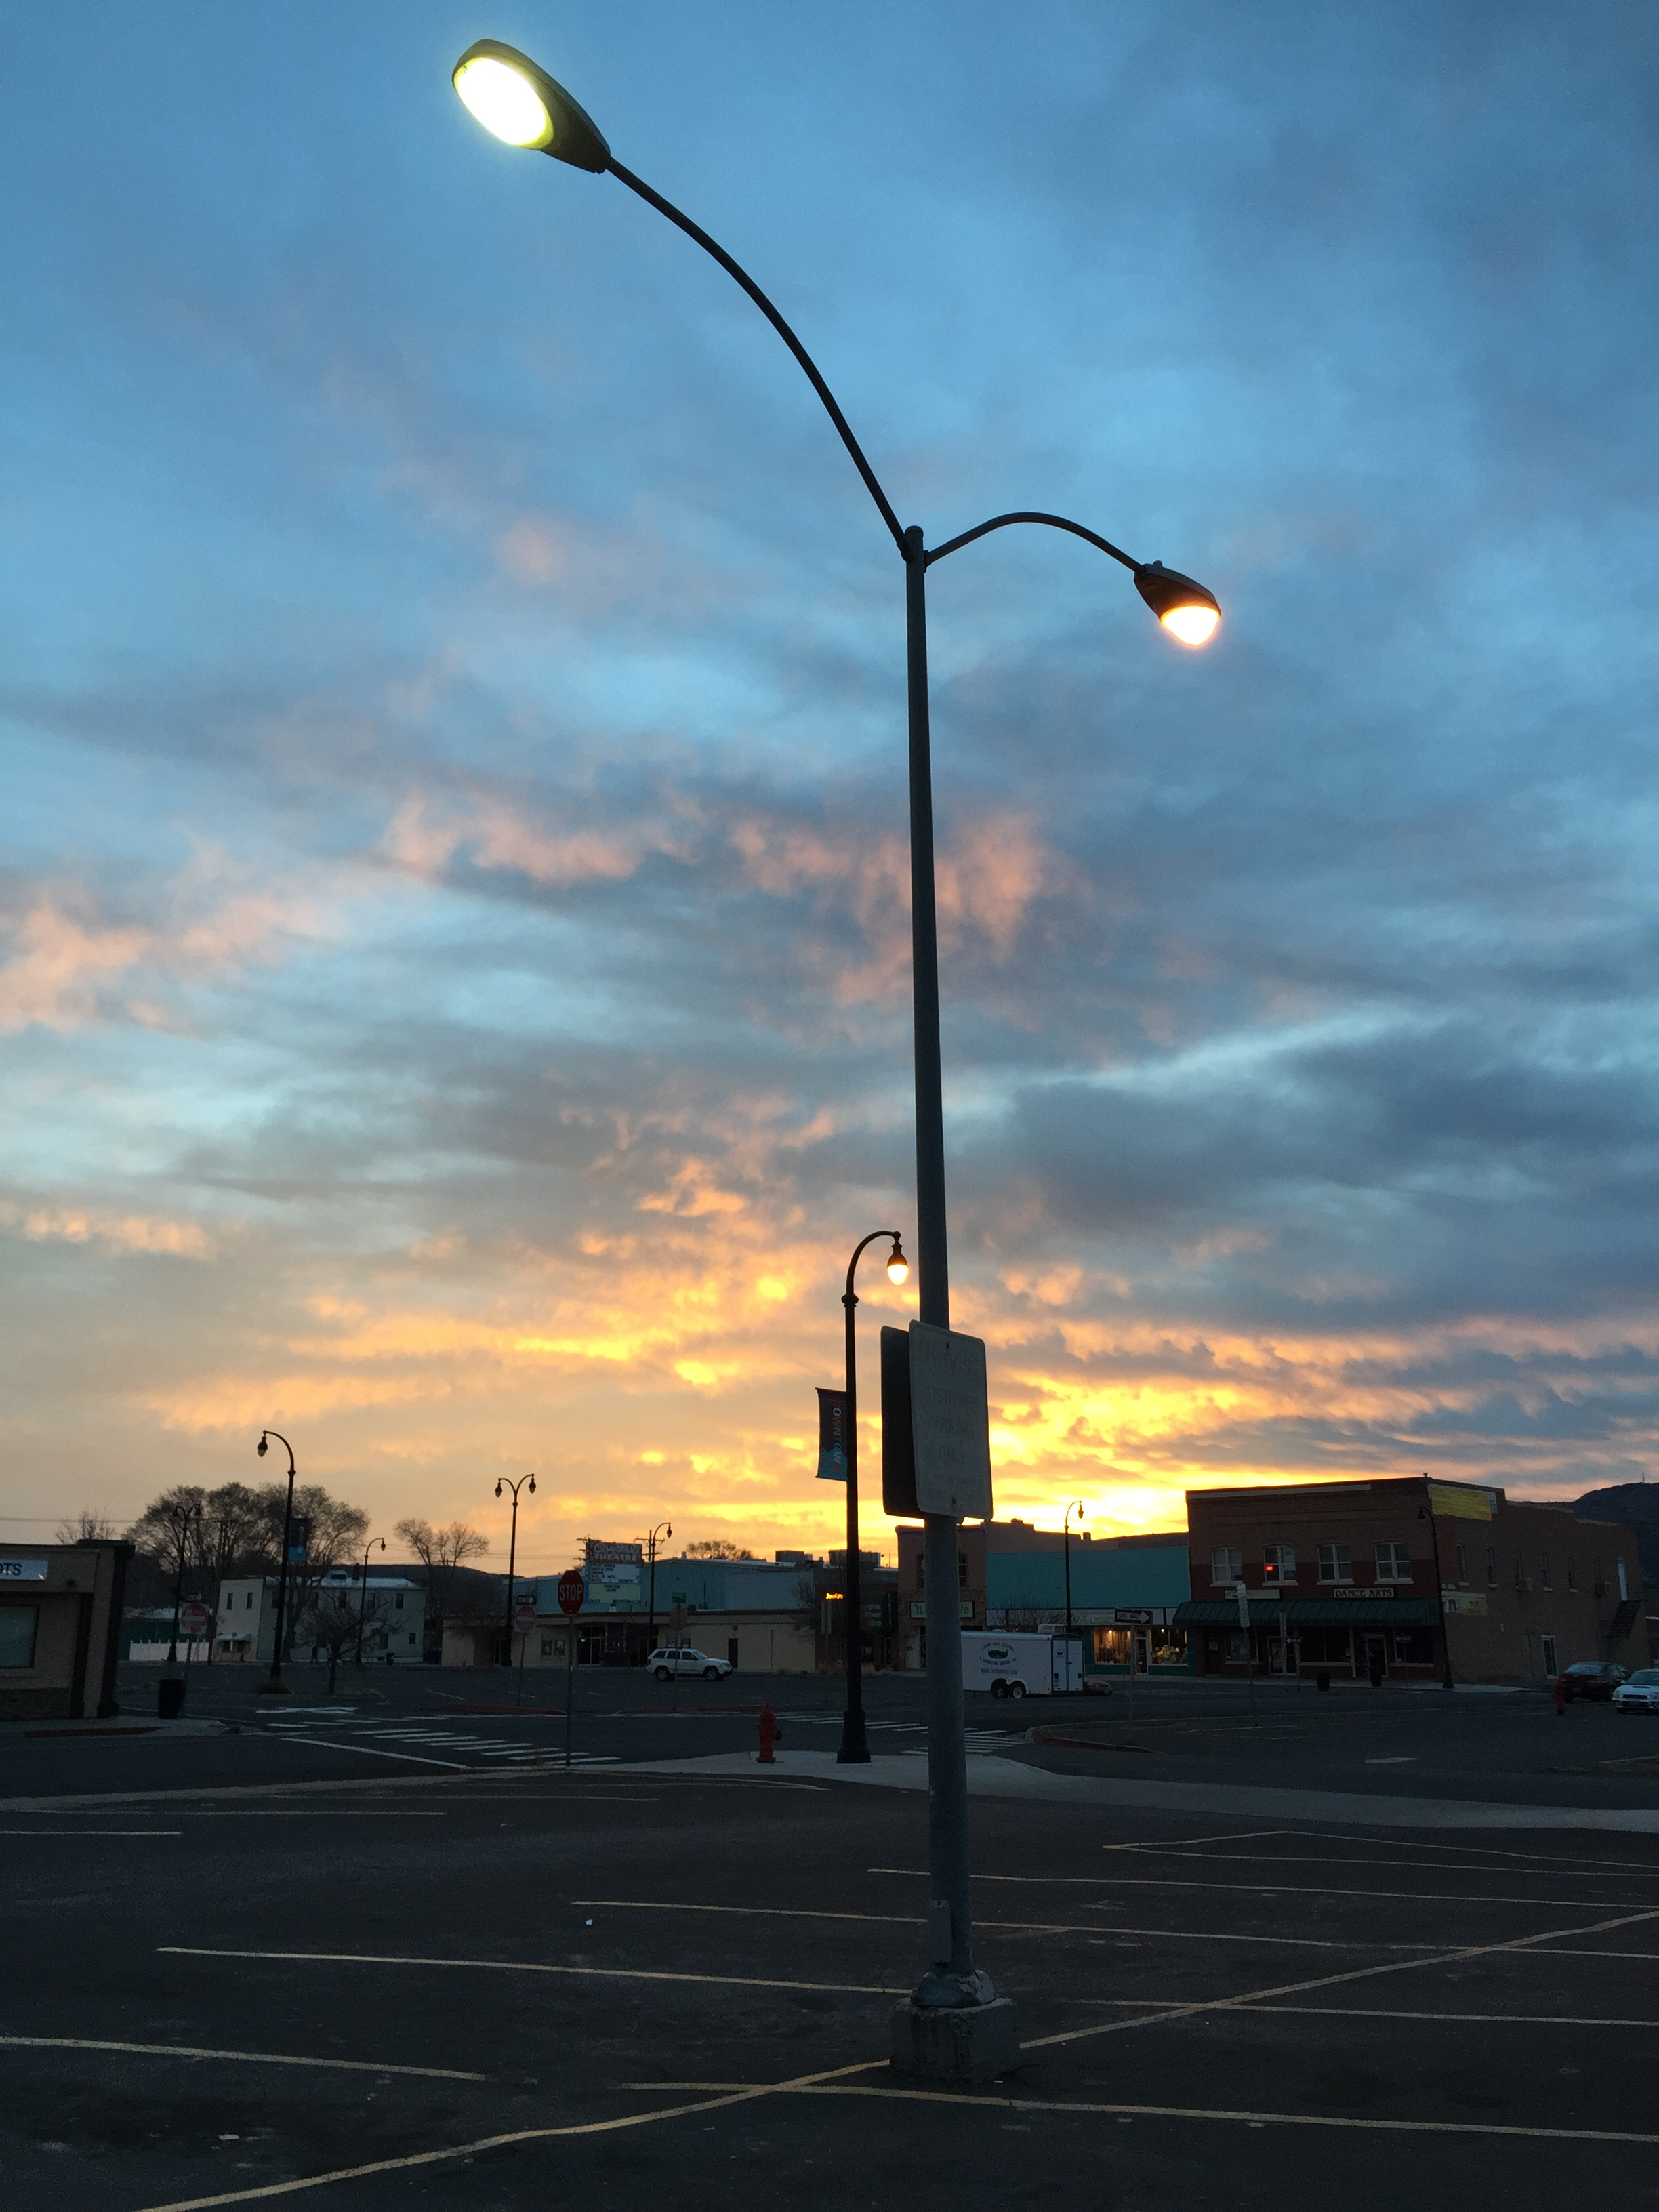 File2015 02 14 06 37 16 street light post with both sodium vapor file2015 02 14 06 37 16 street light post with both sodium mozeypictures Images